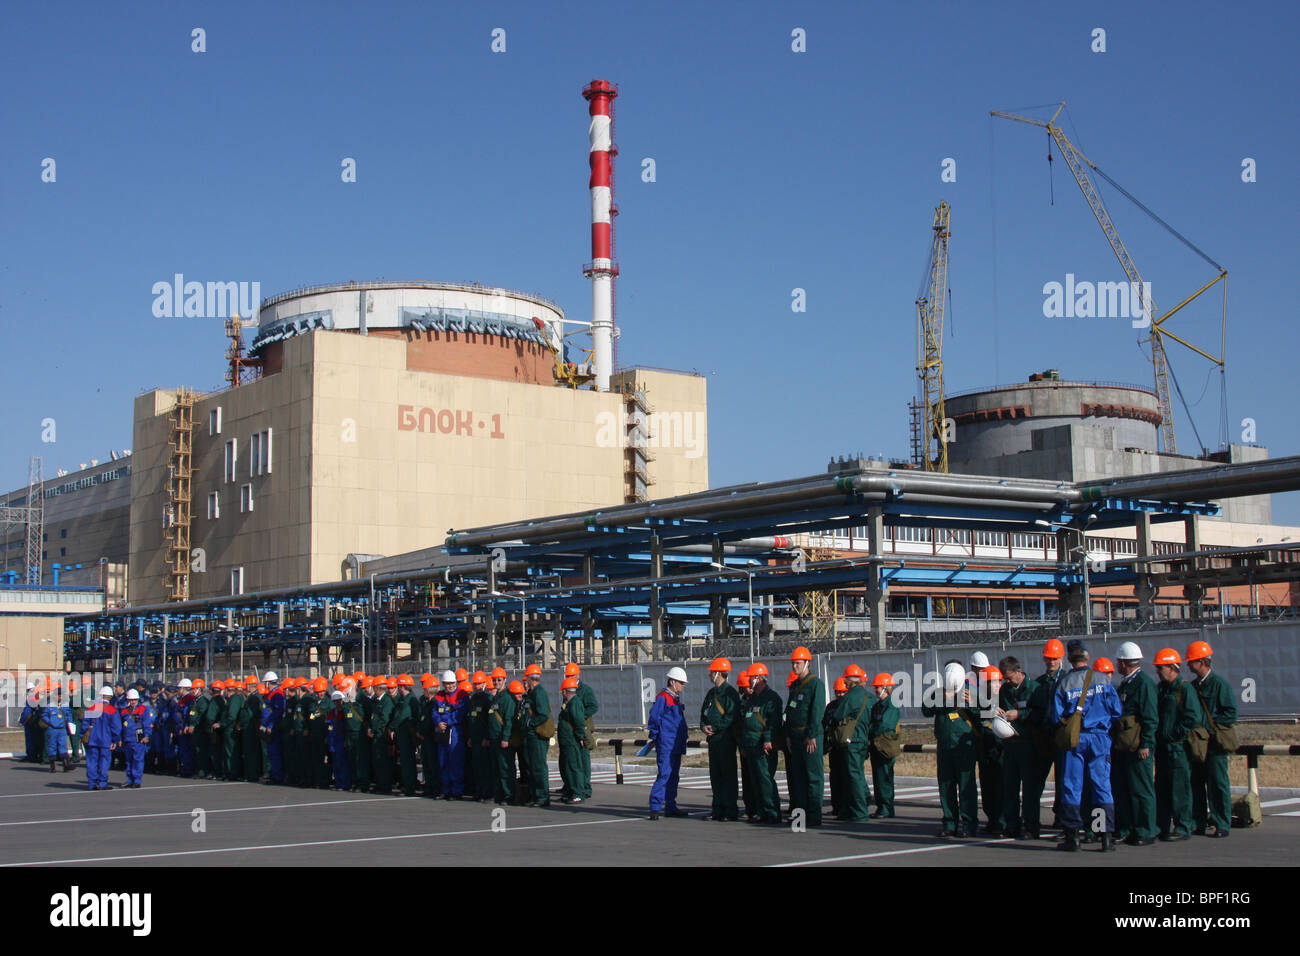 Rostov (previously - Volgodonsk) nuclear power plant - not an easy fate 47